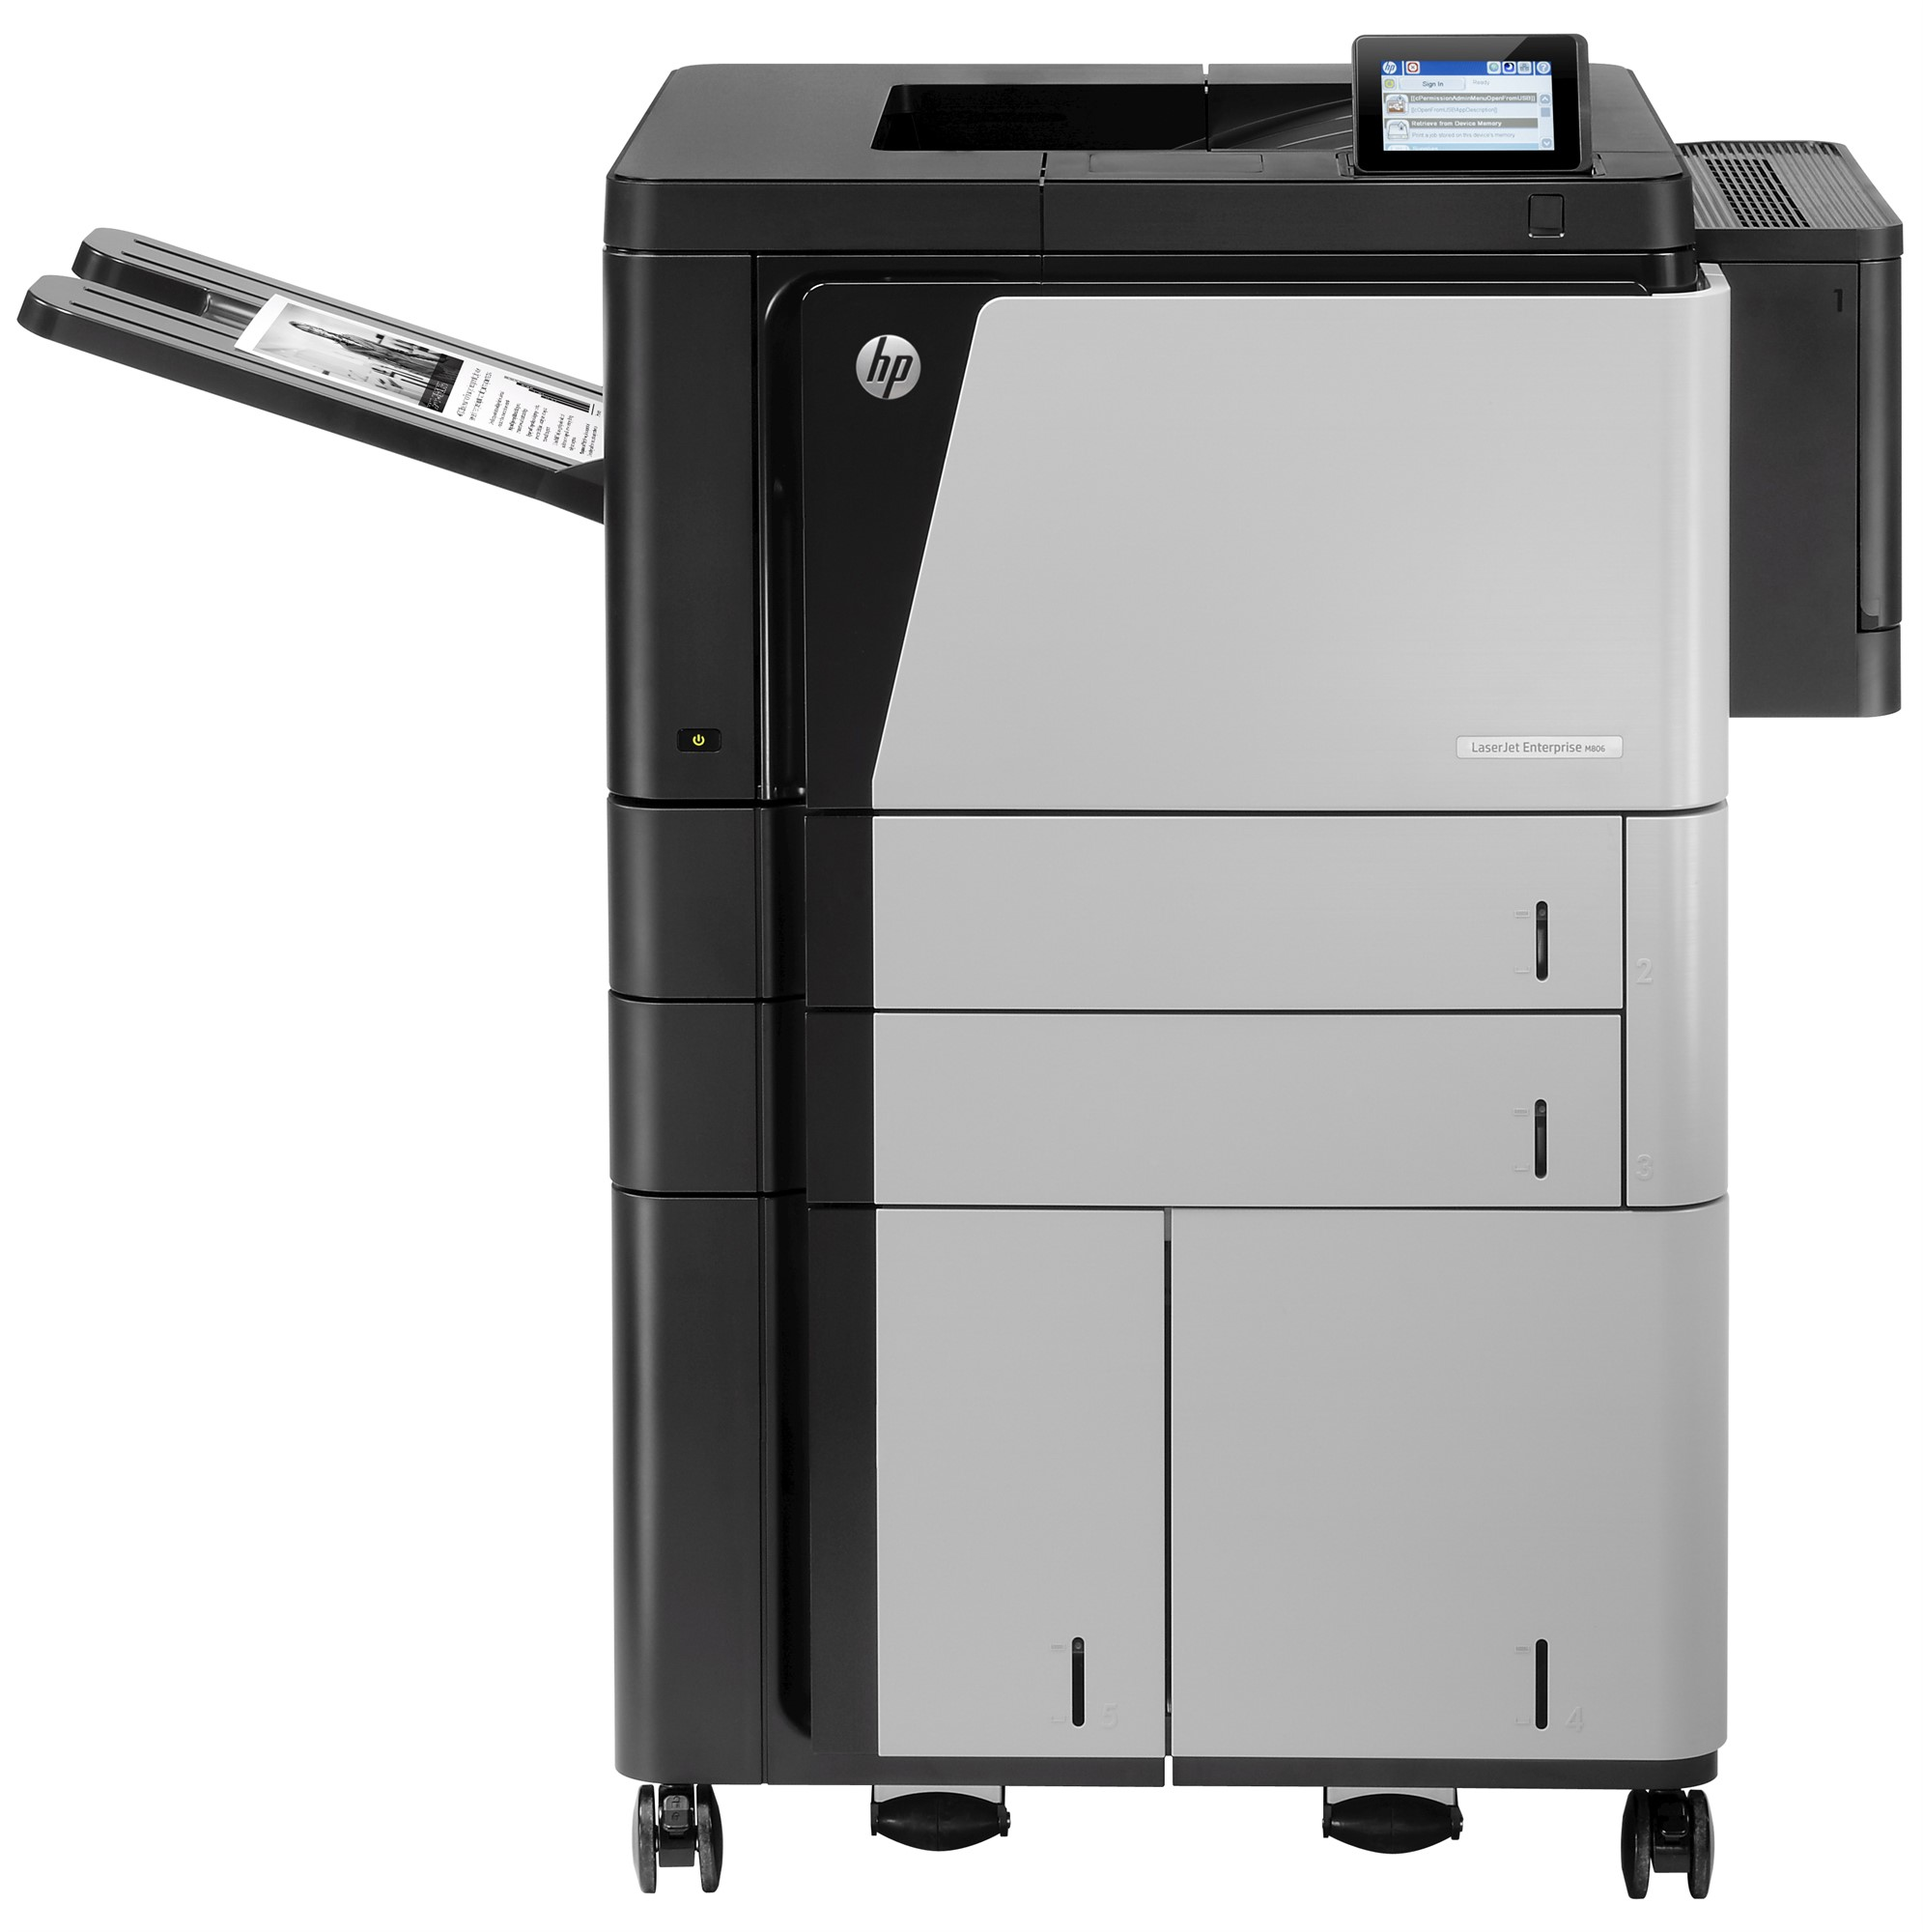 HP CZ245A#B19 LASERJET ENTERPRISE M806X+ PRINTER